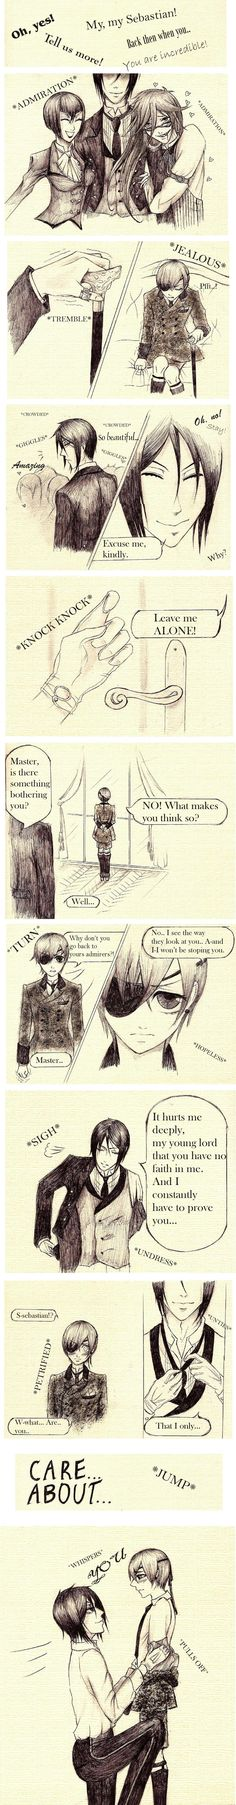 Sebastian x Ciel: Why don't you trust me by SebbyxCiel03.deviantart.com on @deviantART EEEEEEEEEEEEEEEEEEEEEEEEEEEEEEEEEEEEEEEEEEEEEEEEEEEEEEEEEEEEEEEEEEEEEEEEEEEEEEEEEEEEEEEEEEEEPPPPPP